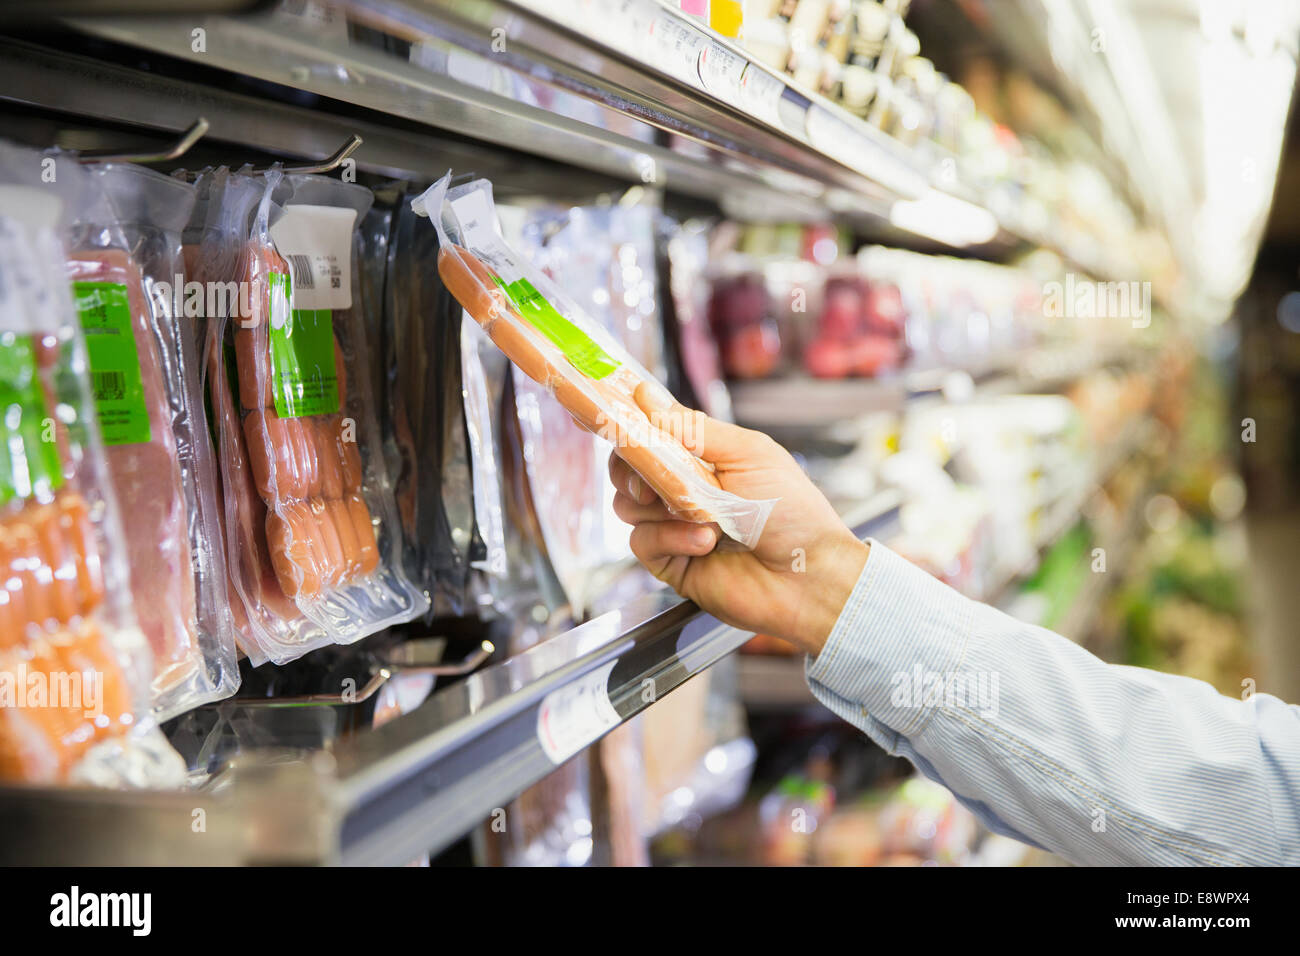 Man selecting product in grocery store - Stock Image